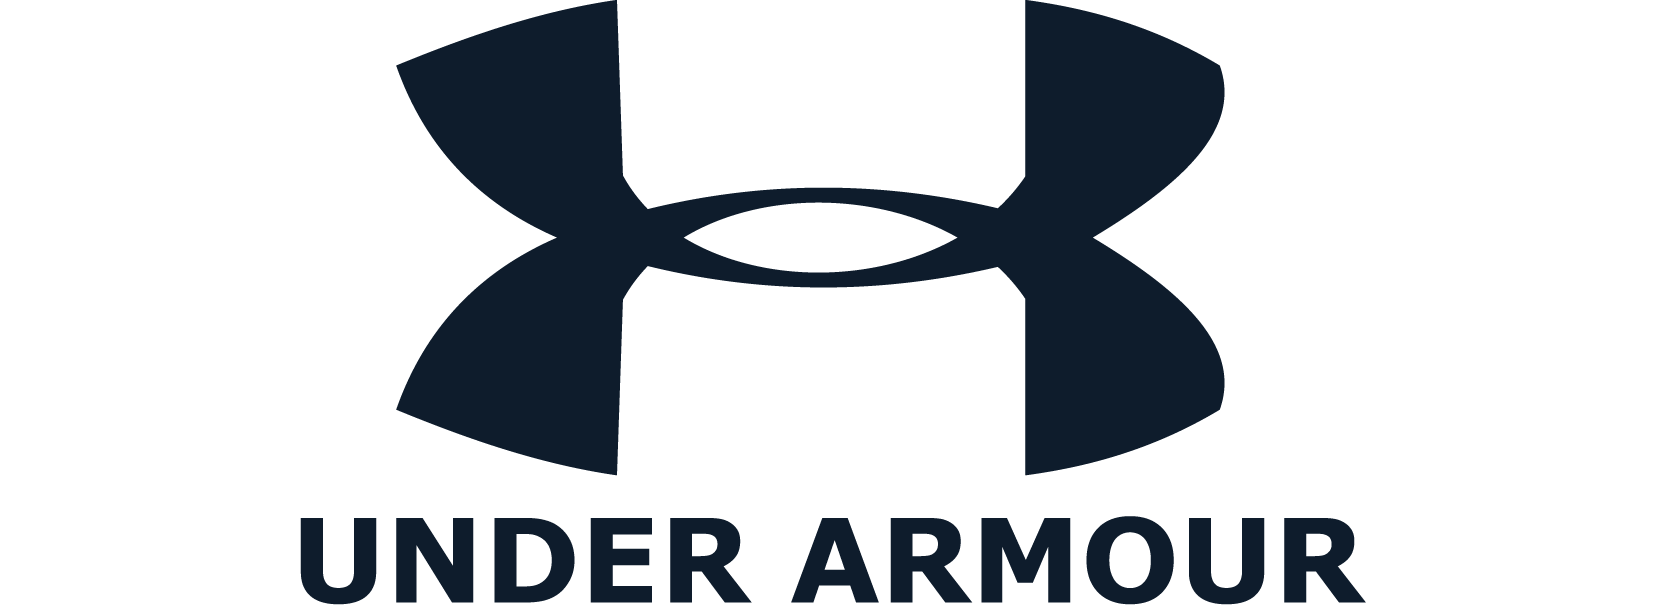 UNDER ARMOUR FOR YOUR TEAM